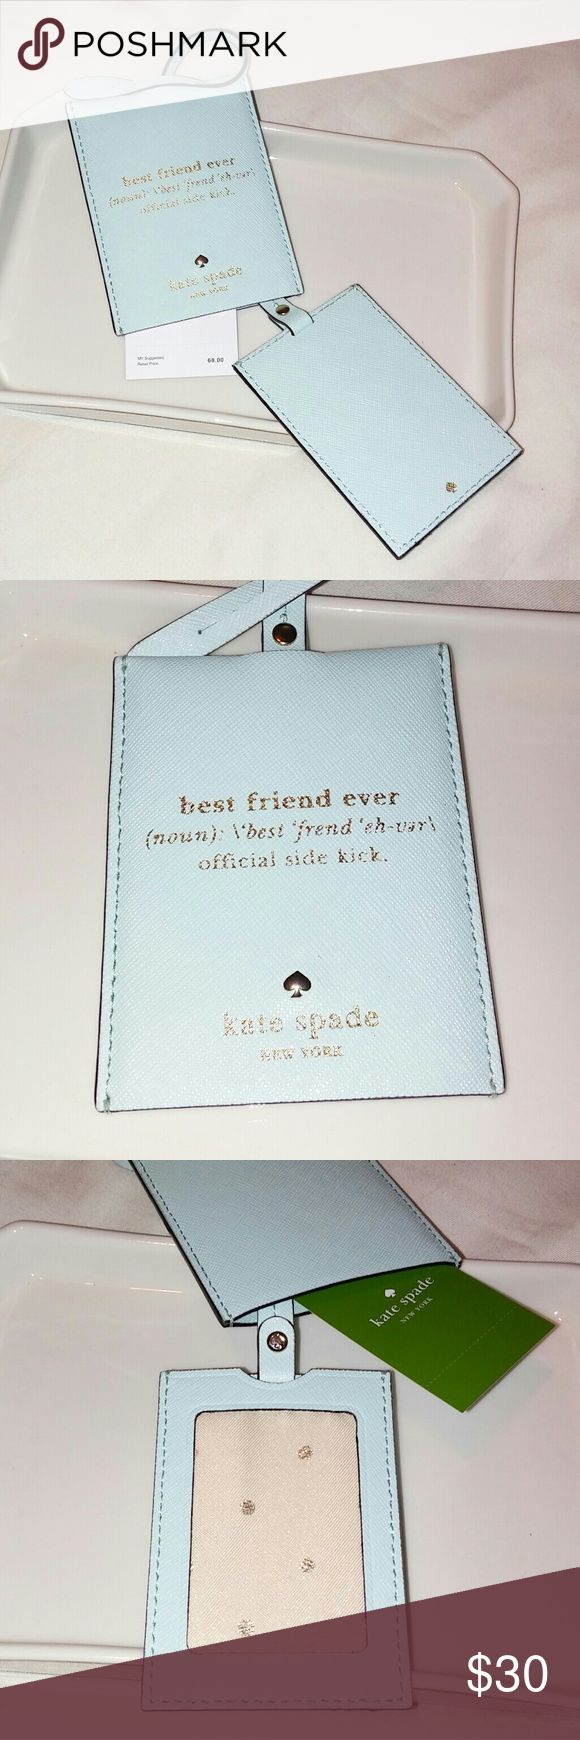 Kate Spade luggage tag. Light blue.   NWT NEW Kate Spade luggage tag in a soft light blue.  Use it for a lap top, briefcase, gym bag or luggage.  Address window pulls up inside for privacy.  Durable and beautiful...it's Kate Spade!! kate spade Accessories Key & Card Holders